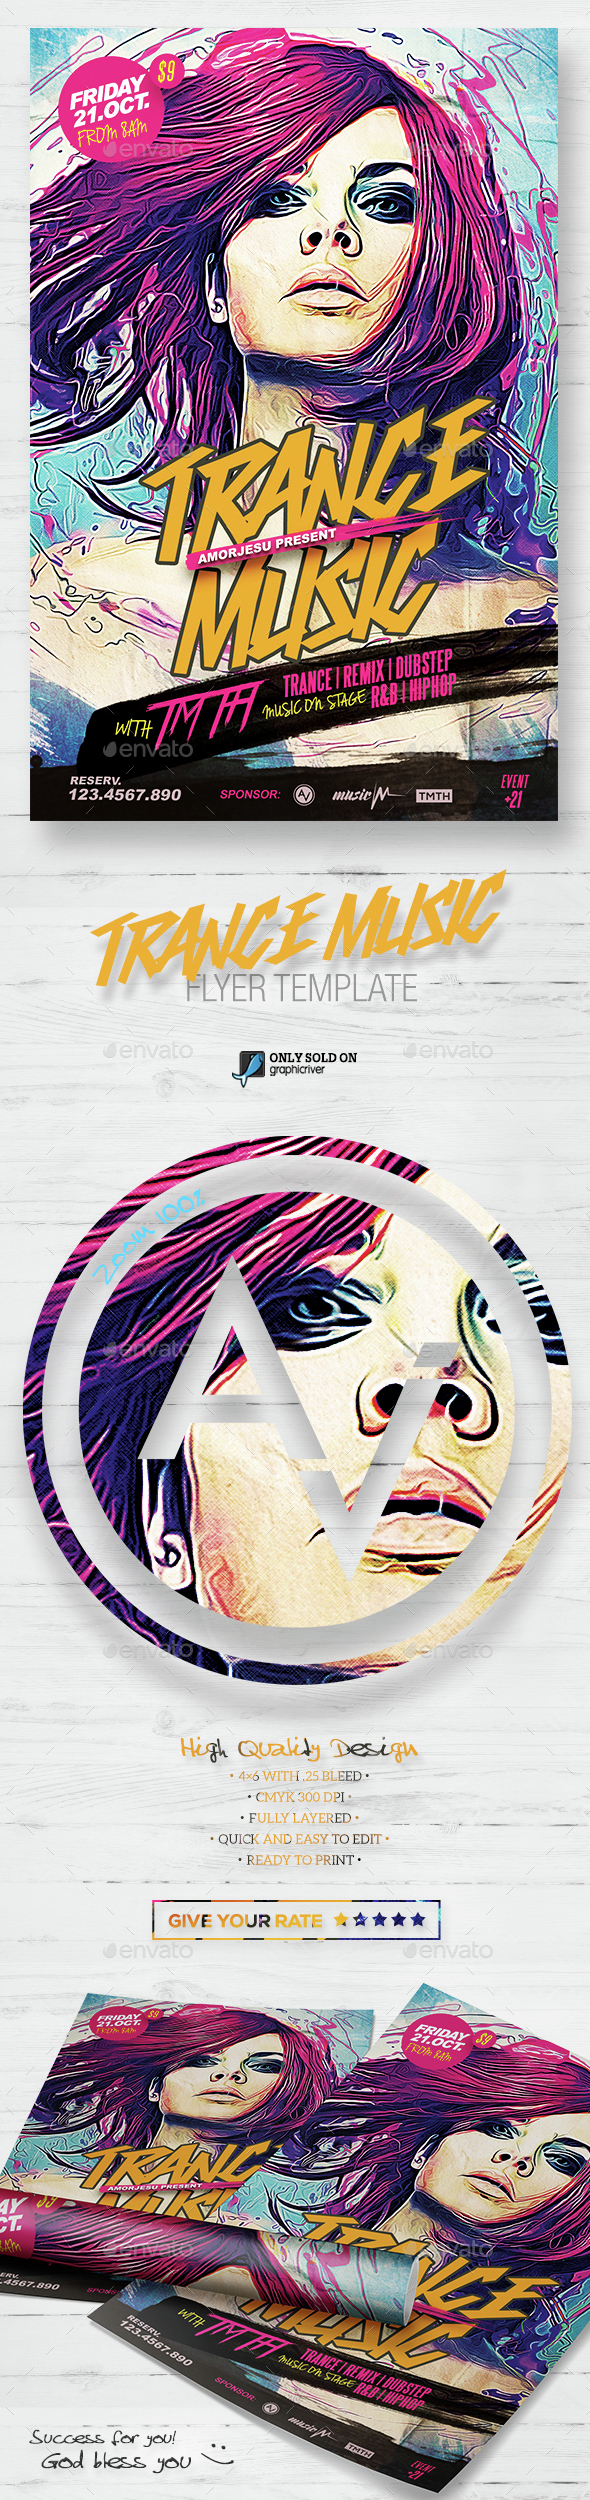 Trance Music Flyer Template - Clubs & Parties Events